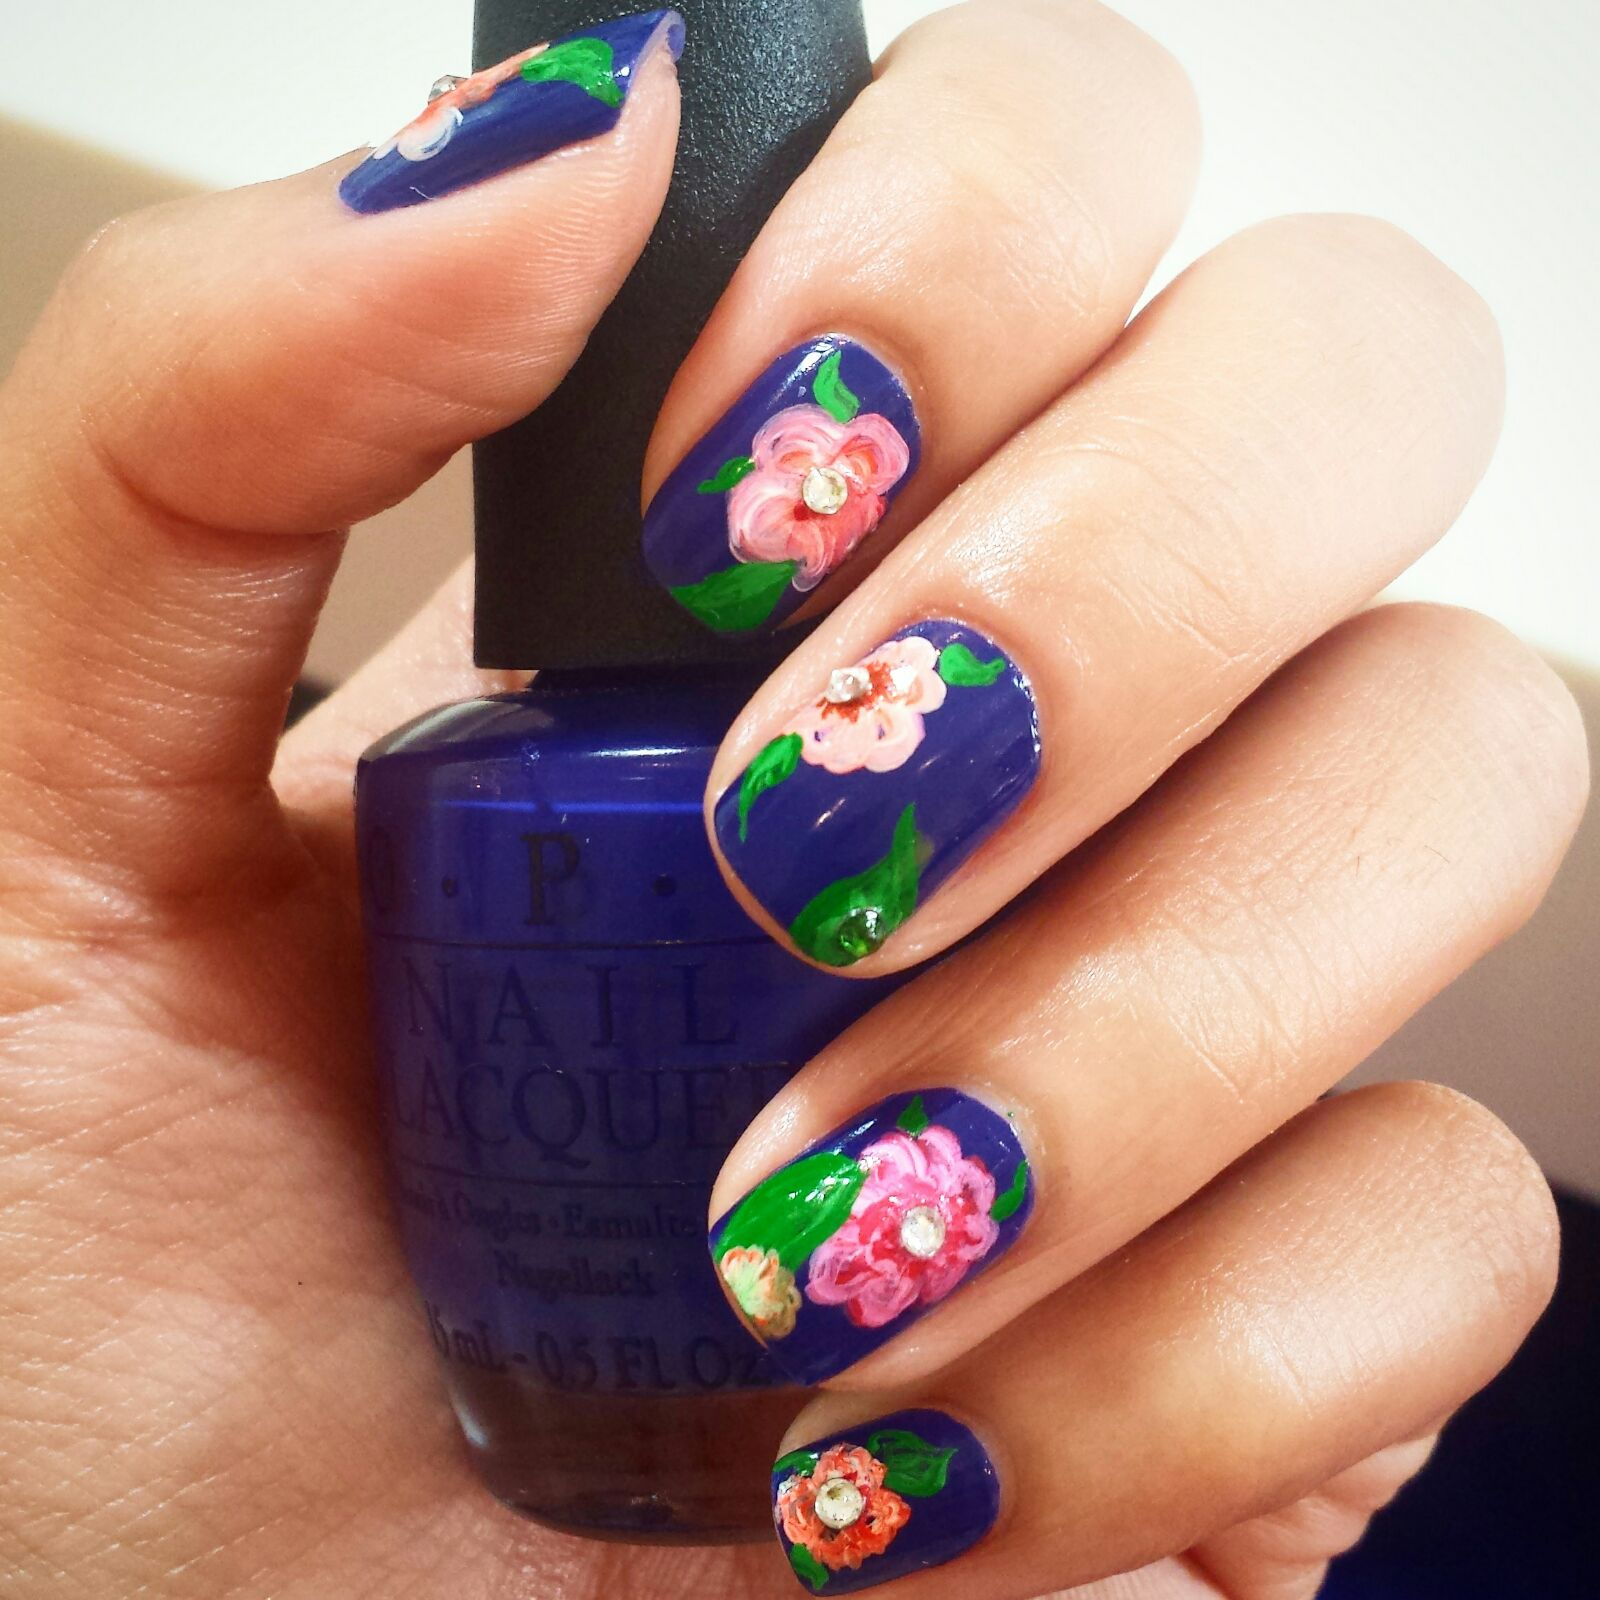 Salons In Dubai Nail Art - Savoir Flair